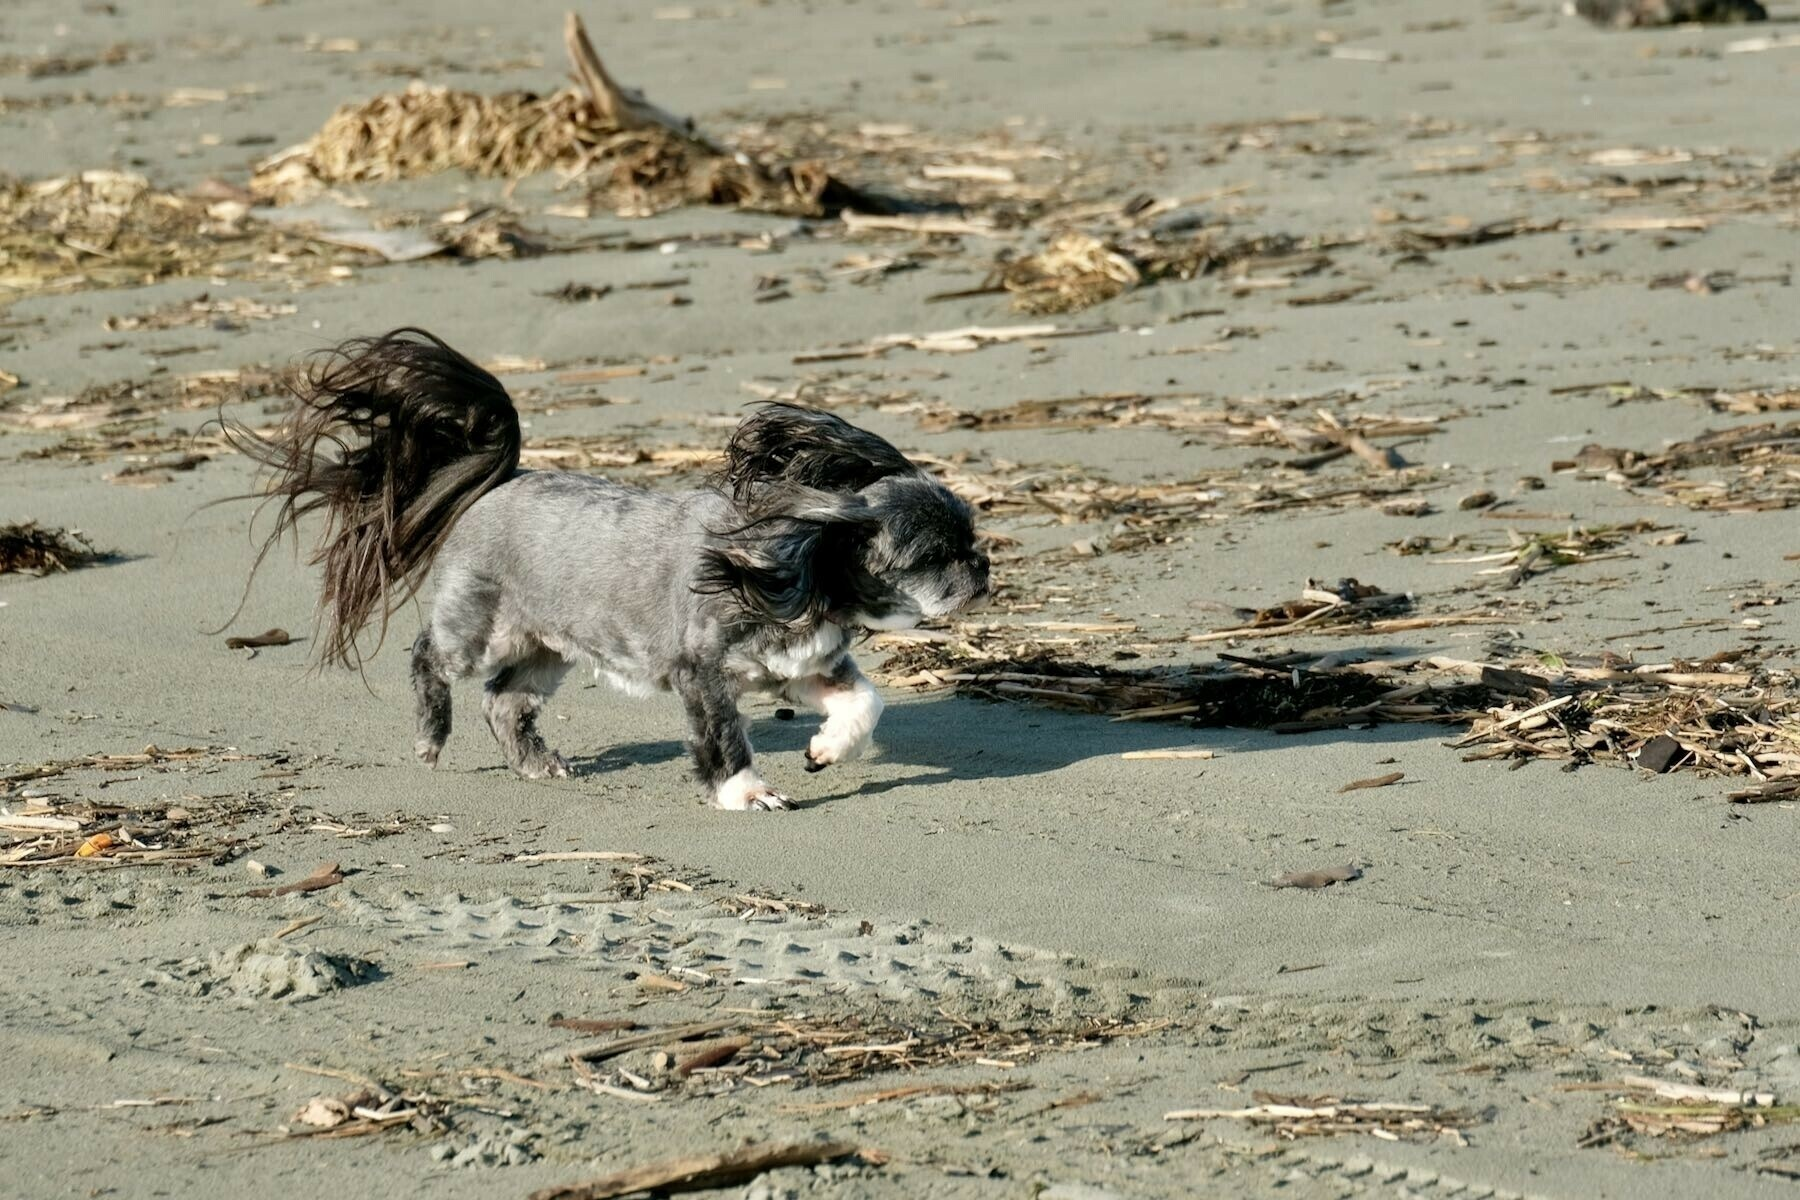 Small black dog running, with ears and tail flying.